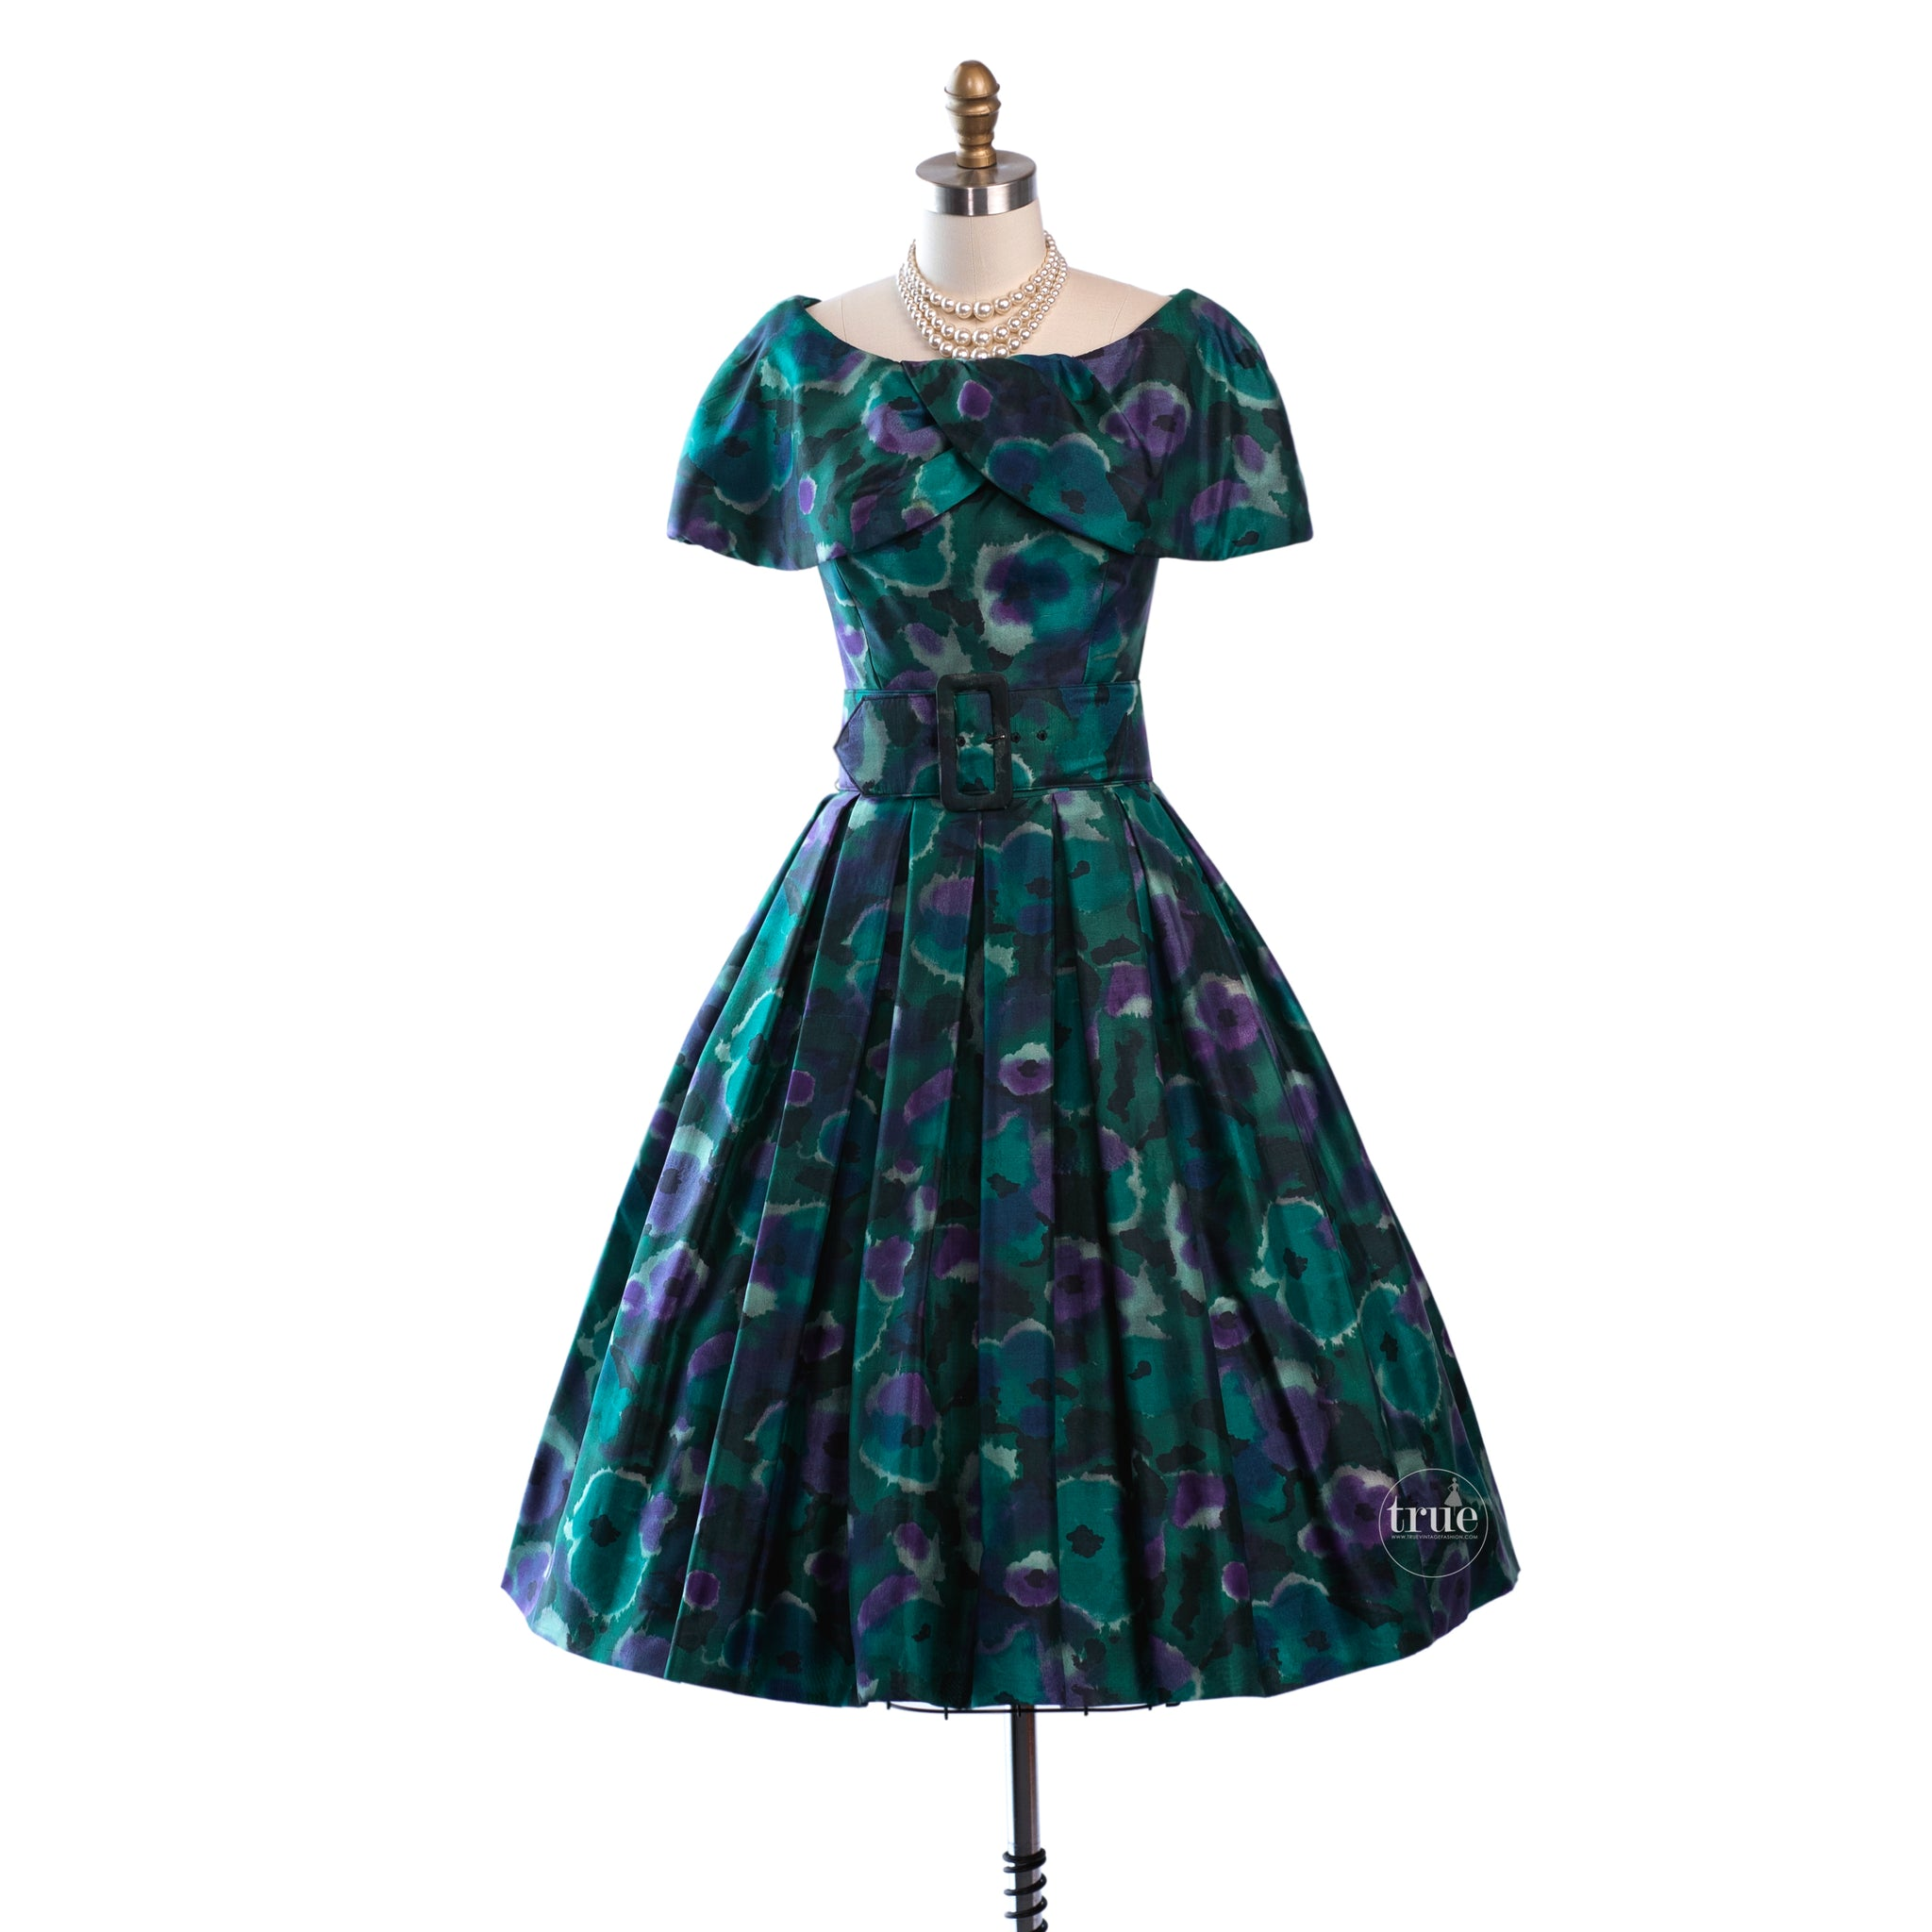 vintage 1950's dress ...dior inspired GIGI YOUNG NEW YORK silk shantung watercolor floral full skirt cocktail party dress